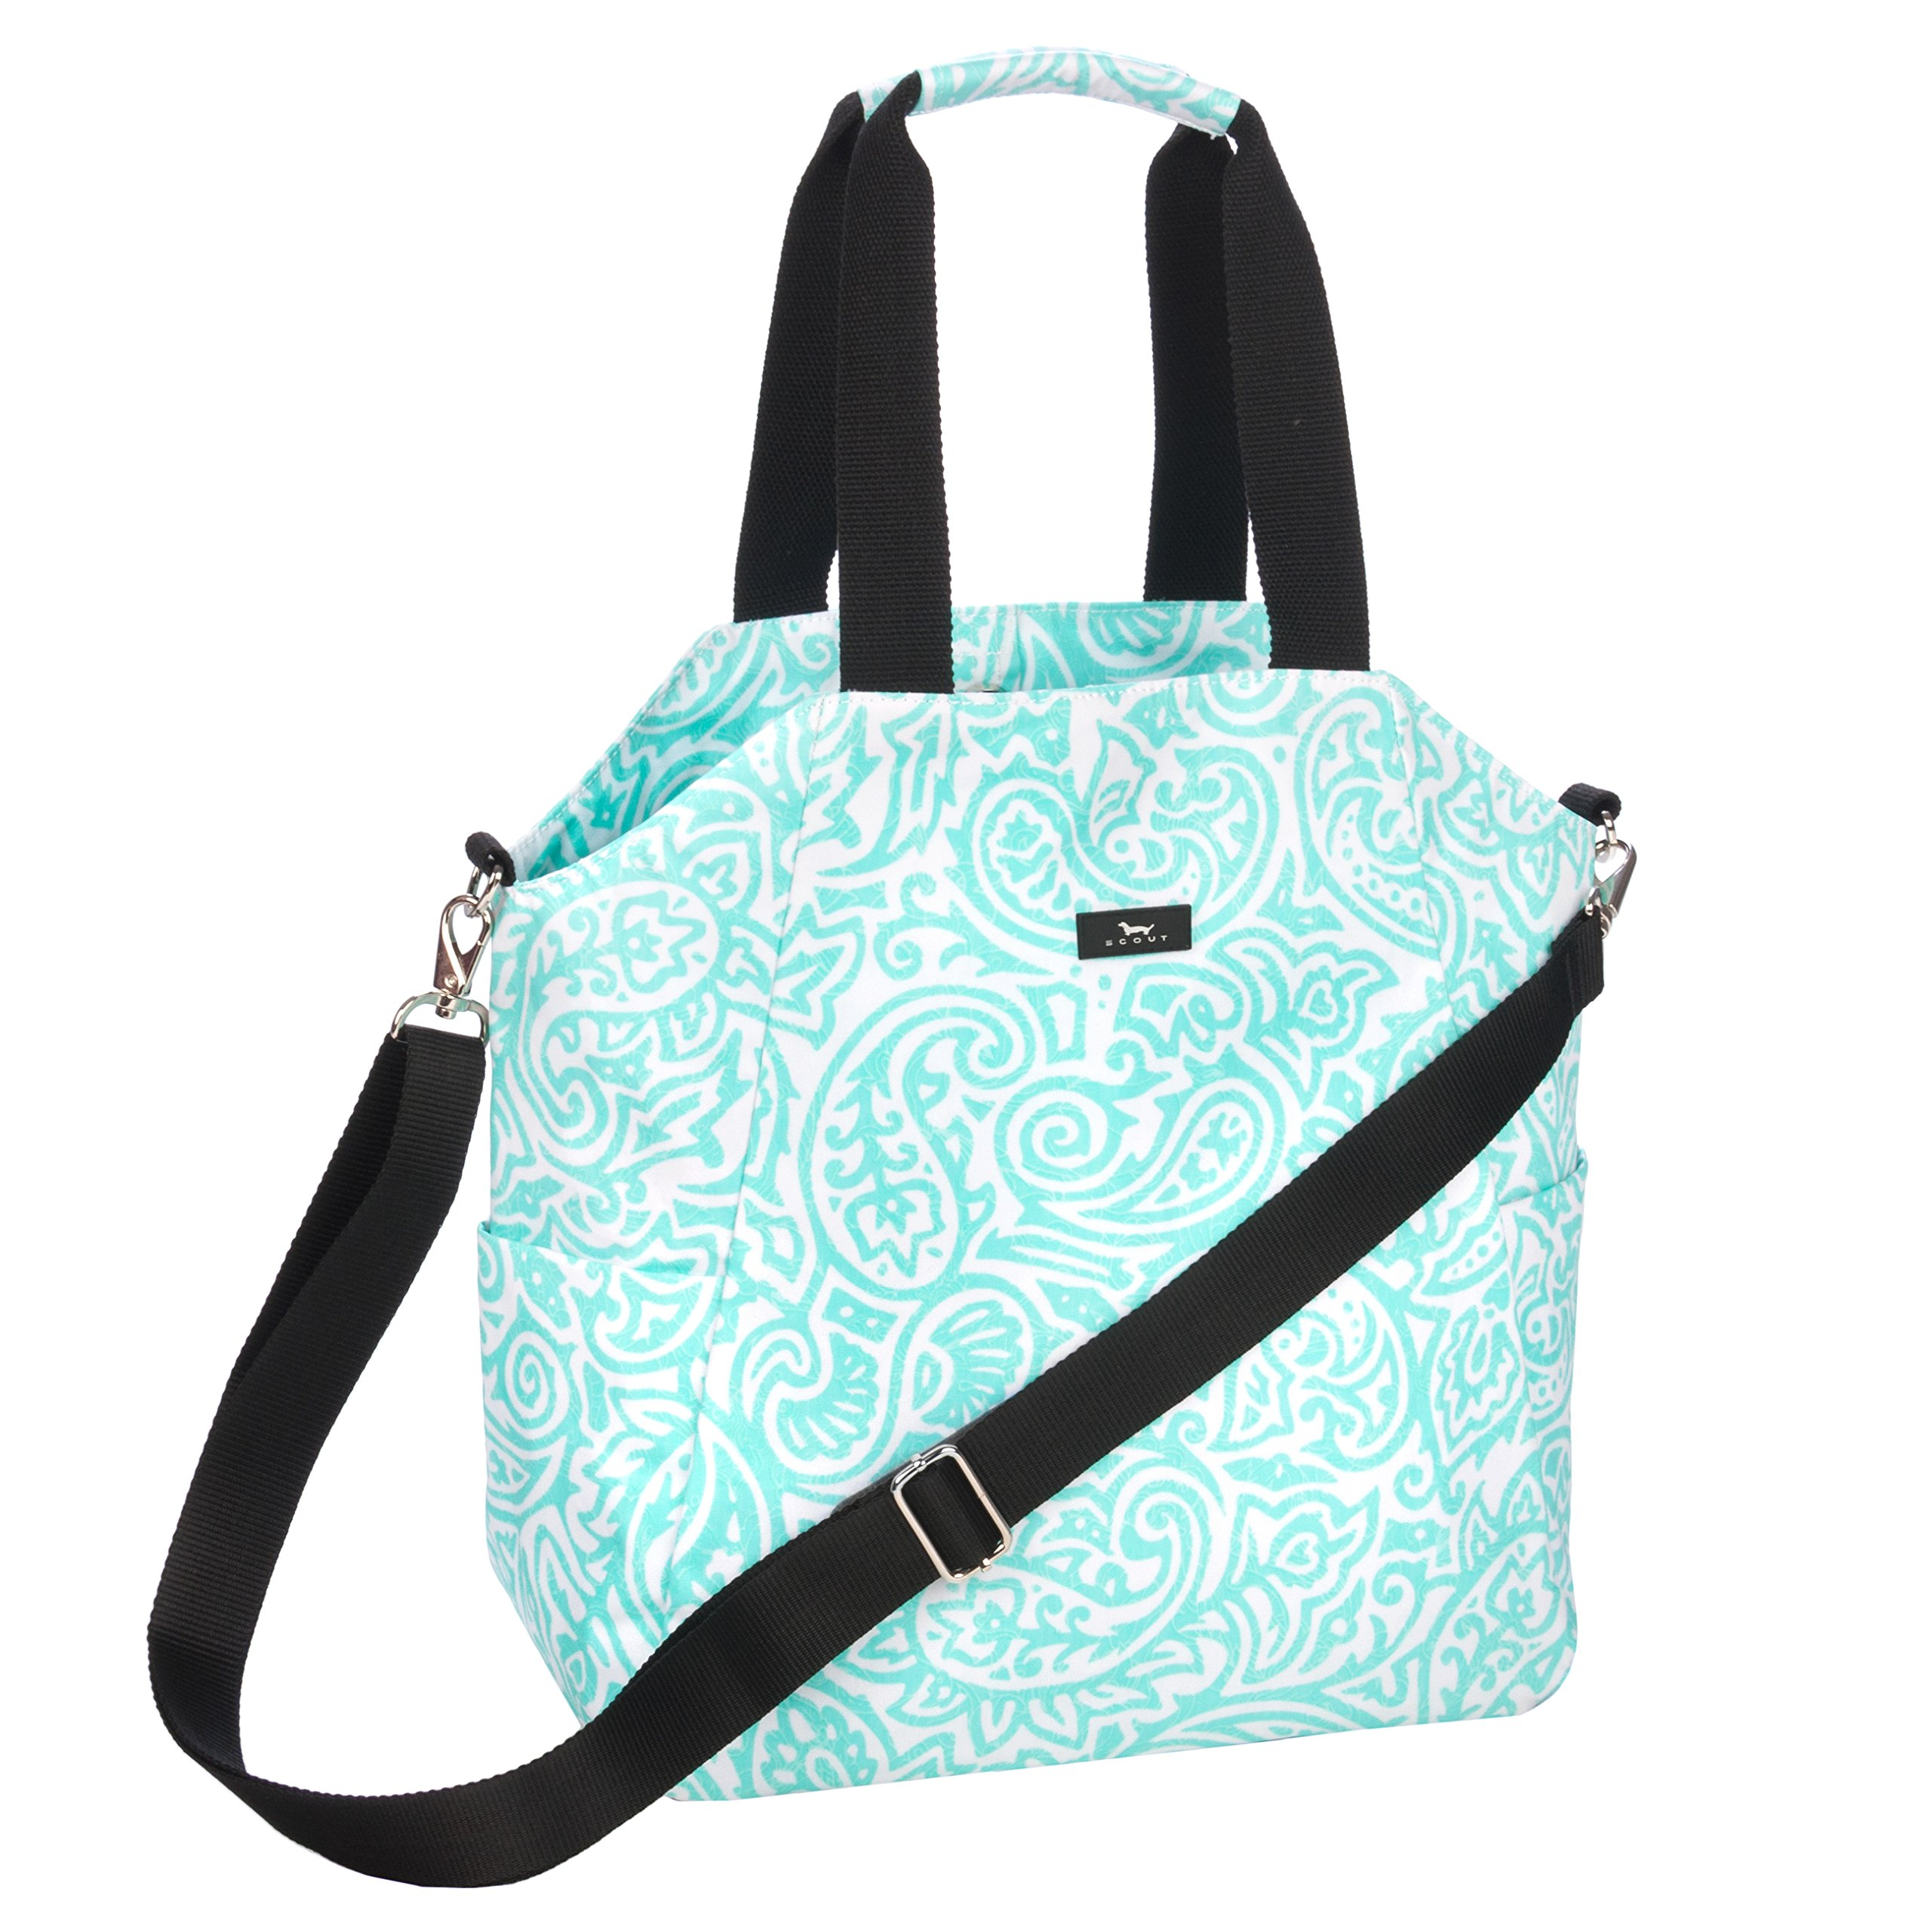 SCOUT Oh Buck It Everyday Crossbody Bag, Gym or Everyday Bag, Adjustable Strap, Water Resistant, Seaglass